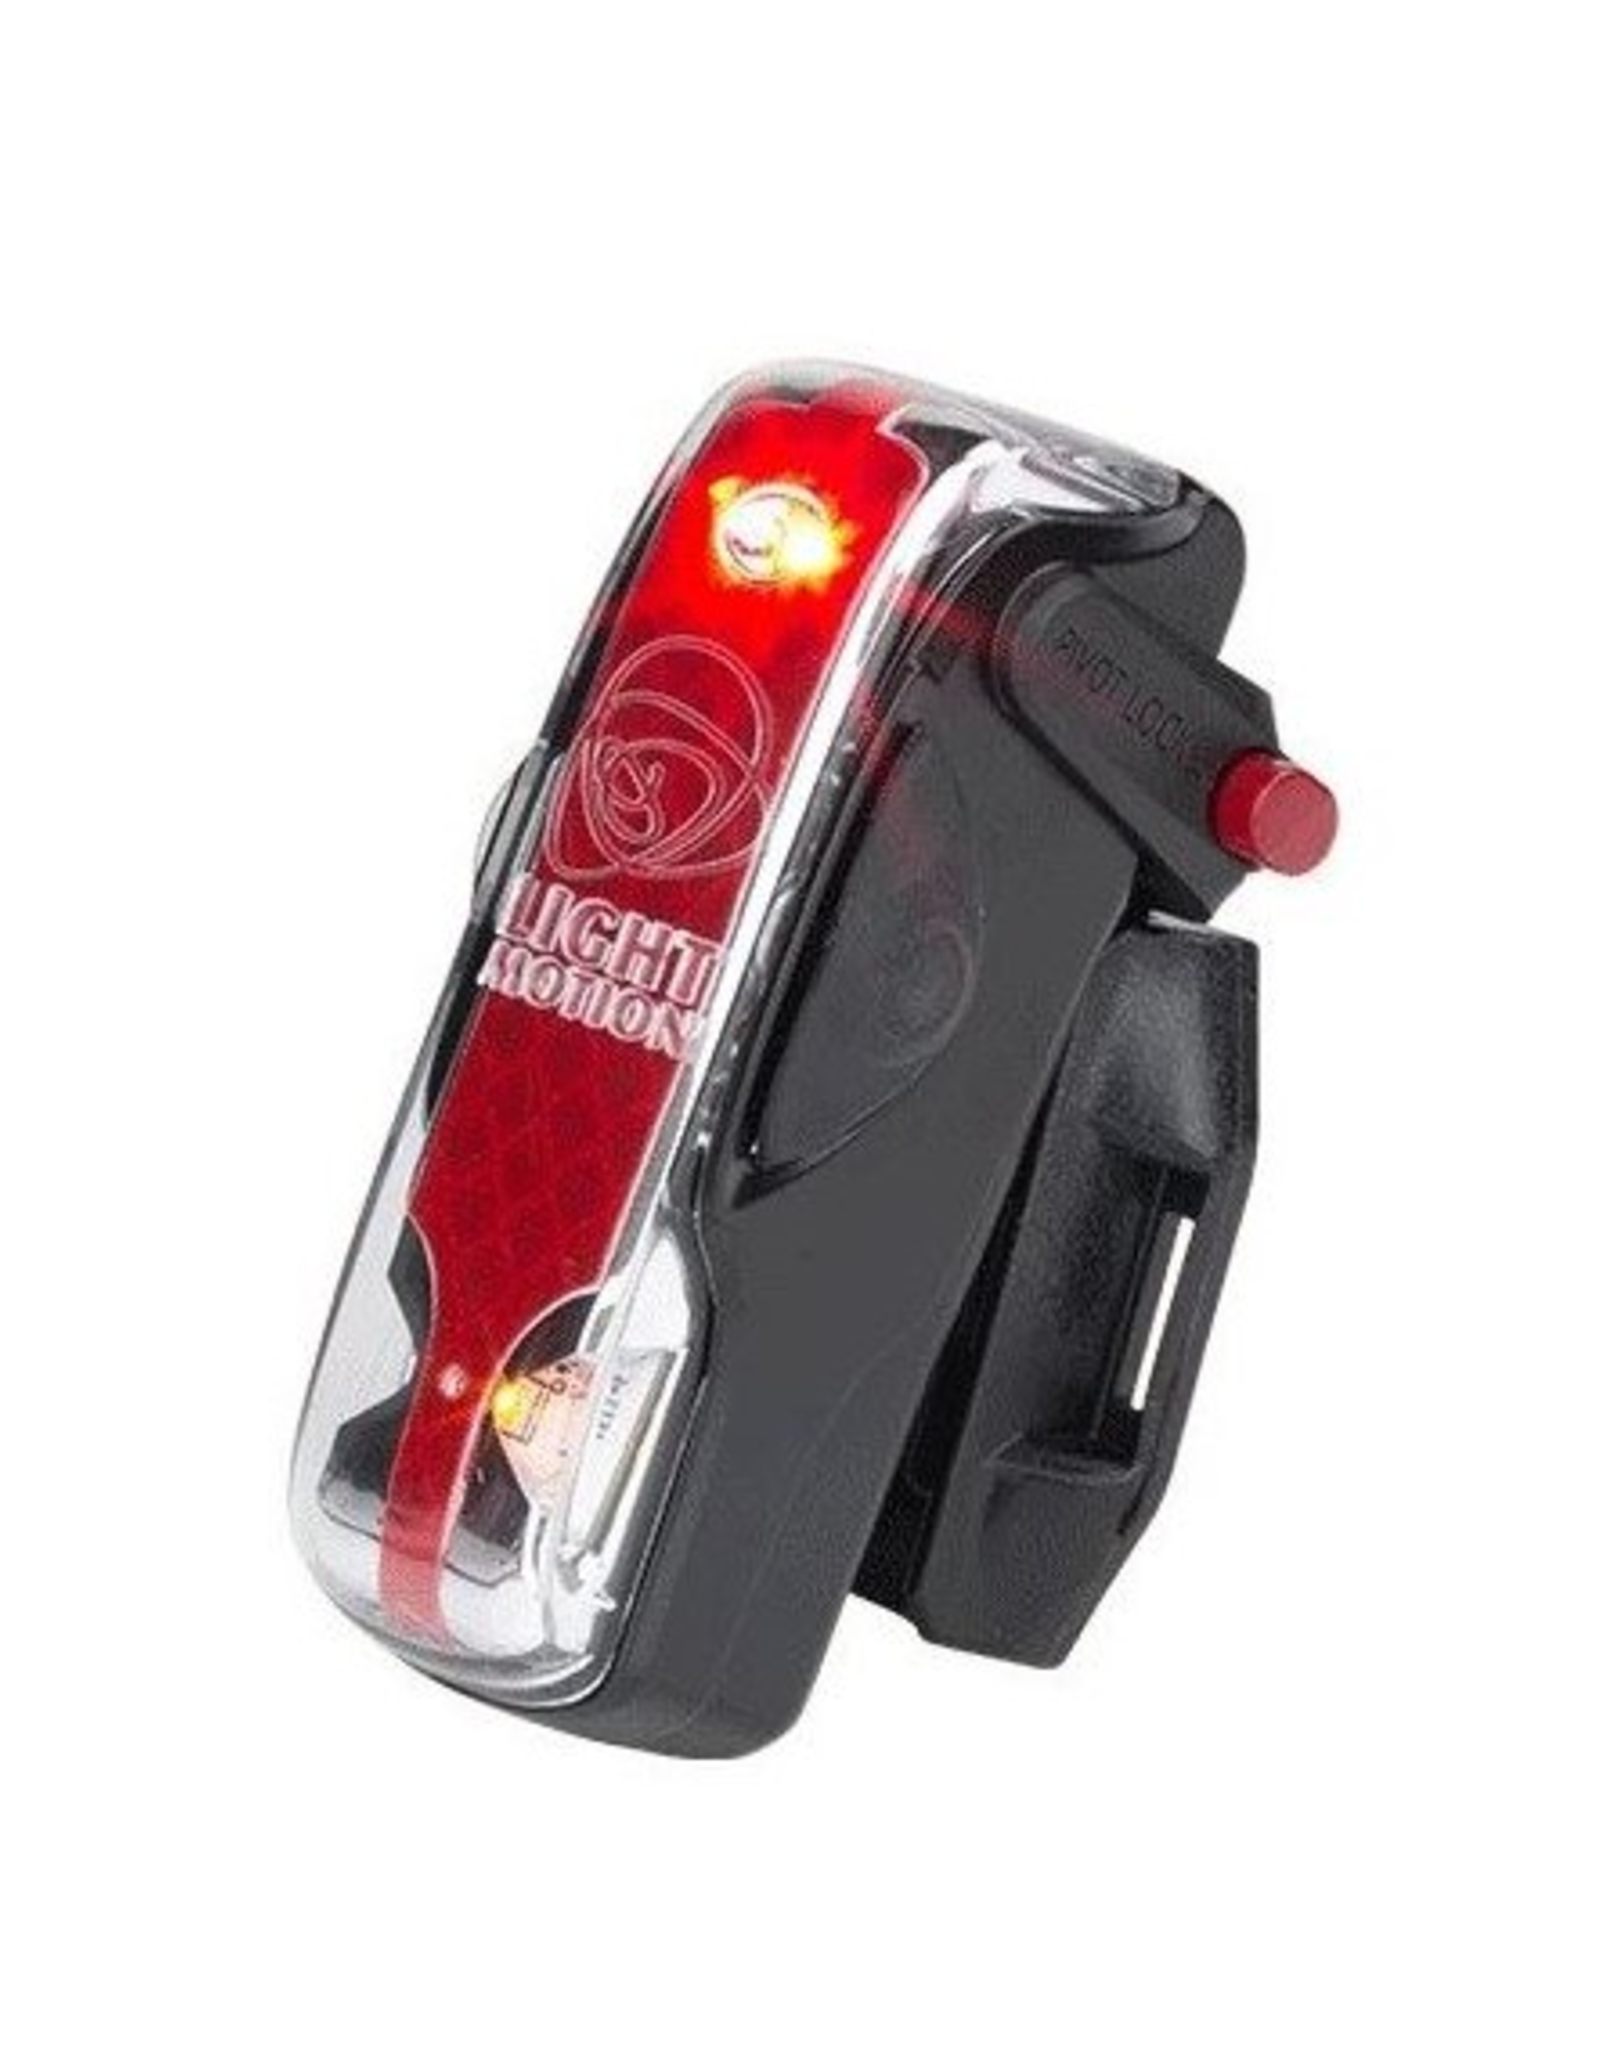 Light and Motion Light & Motion Vis 180 Pro USB Taillight